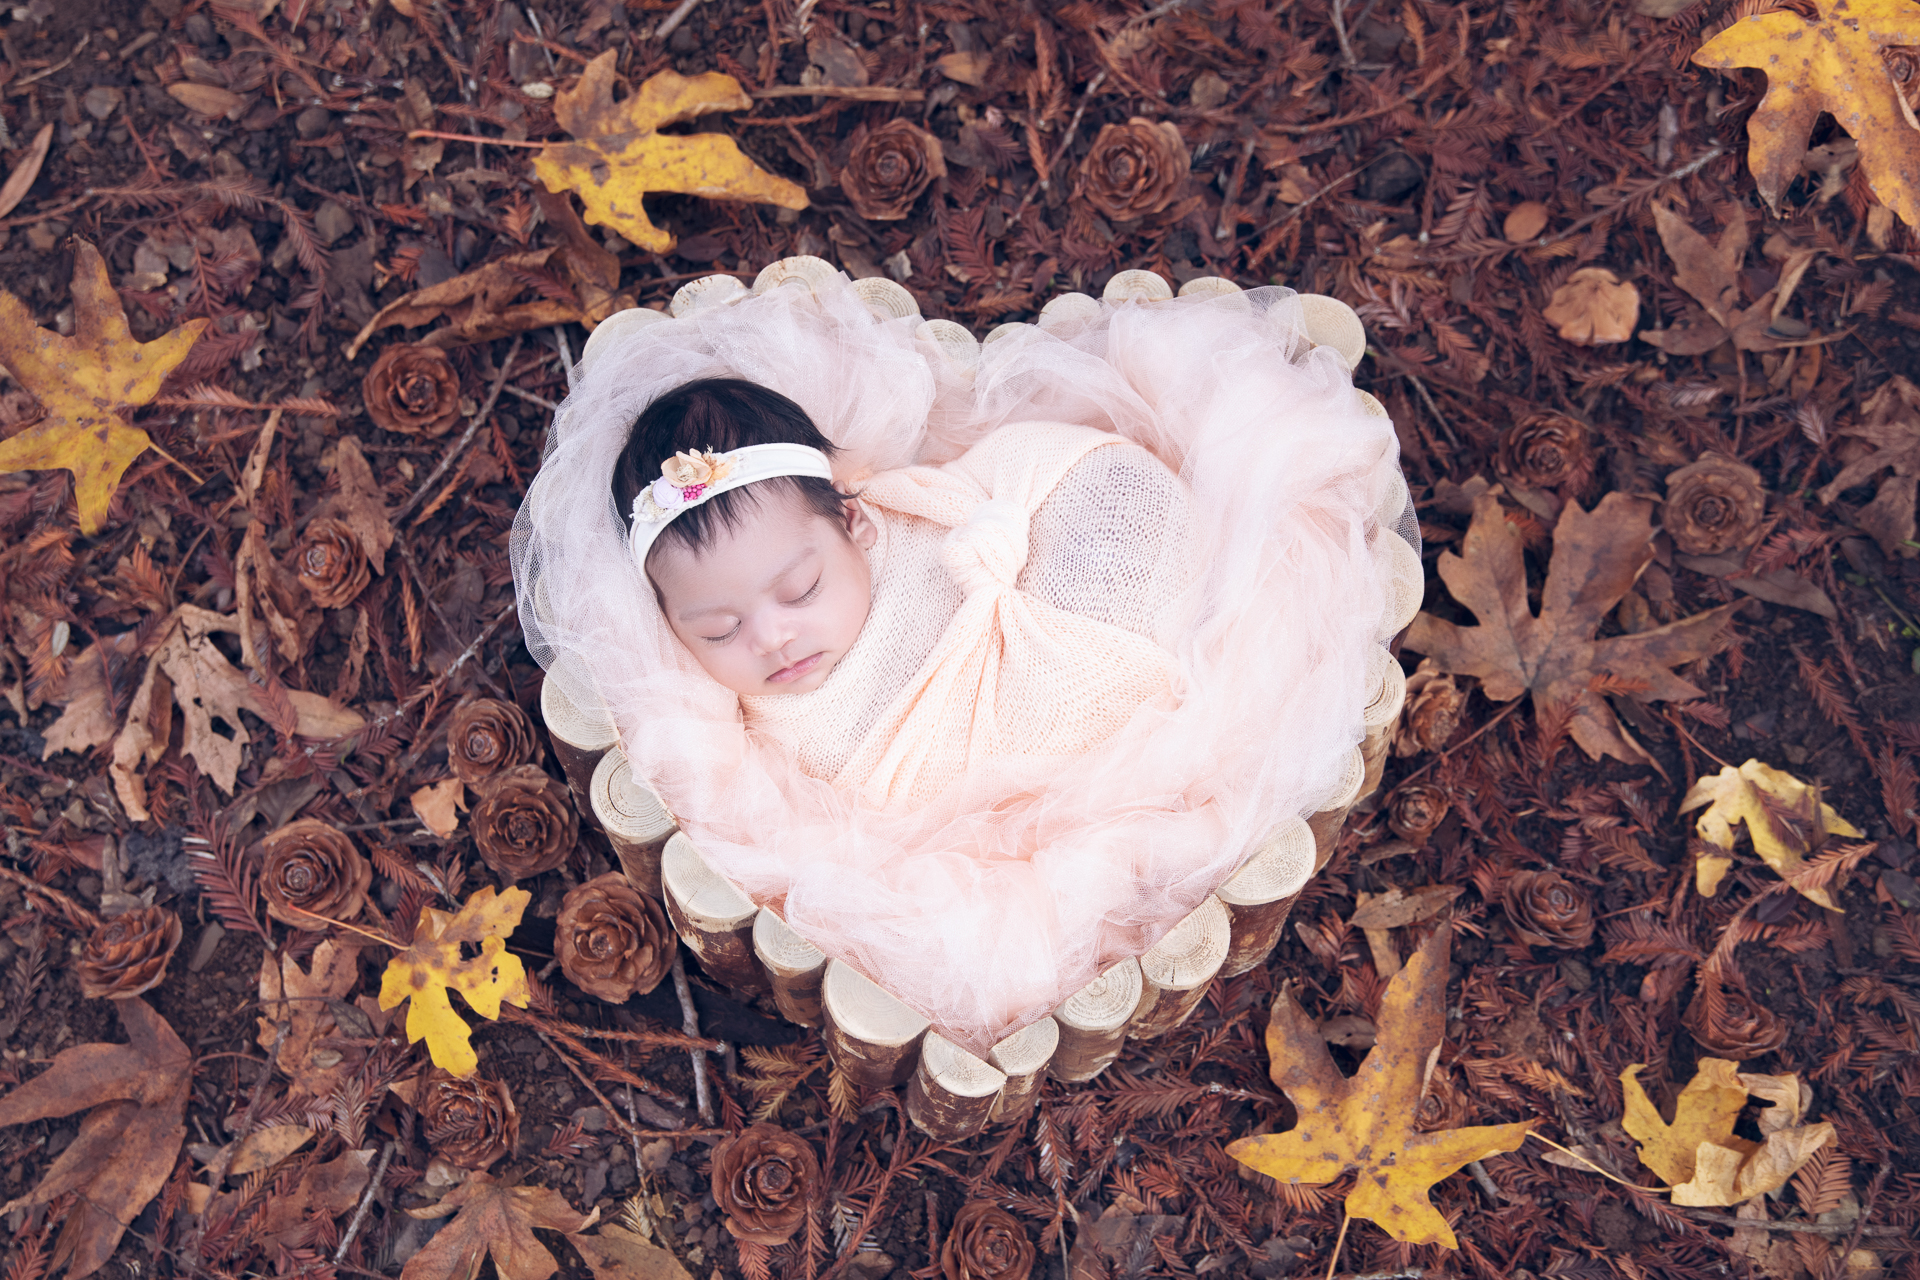 Newborn wearing white headband and beige wrap rests on wood heart shaped prop outoors during fall season.